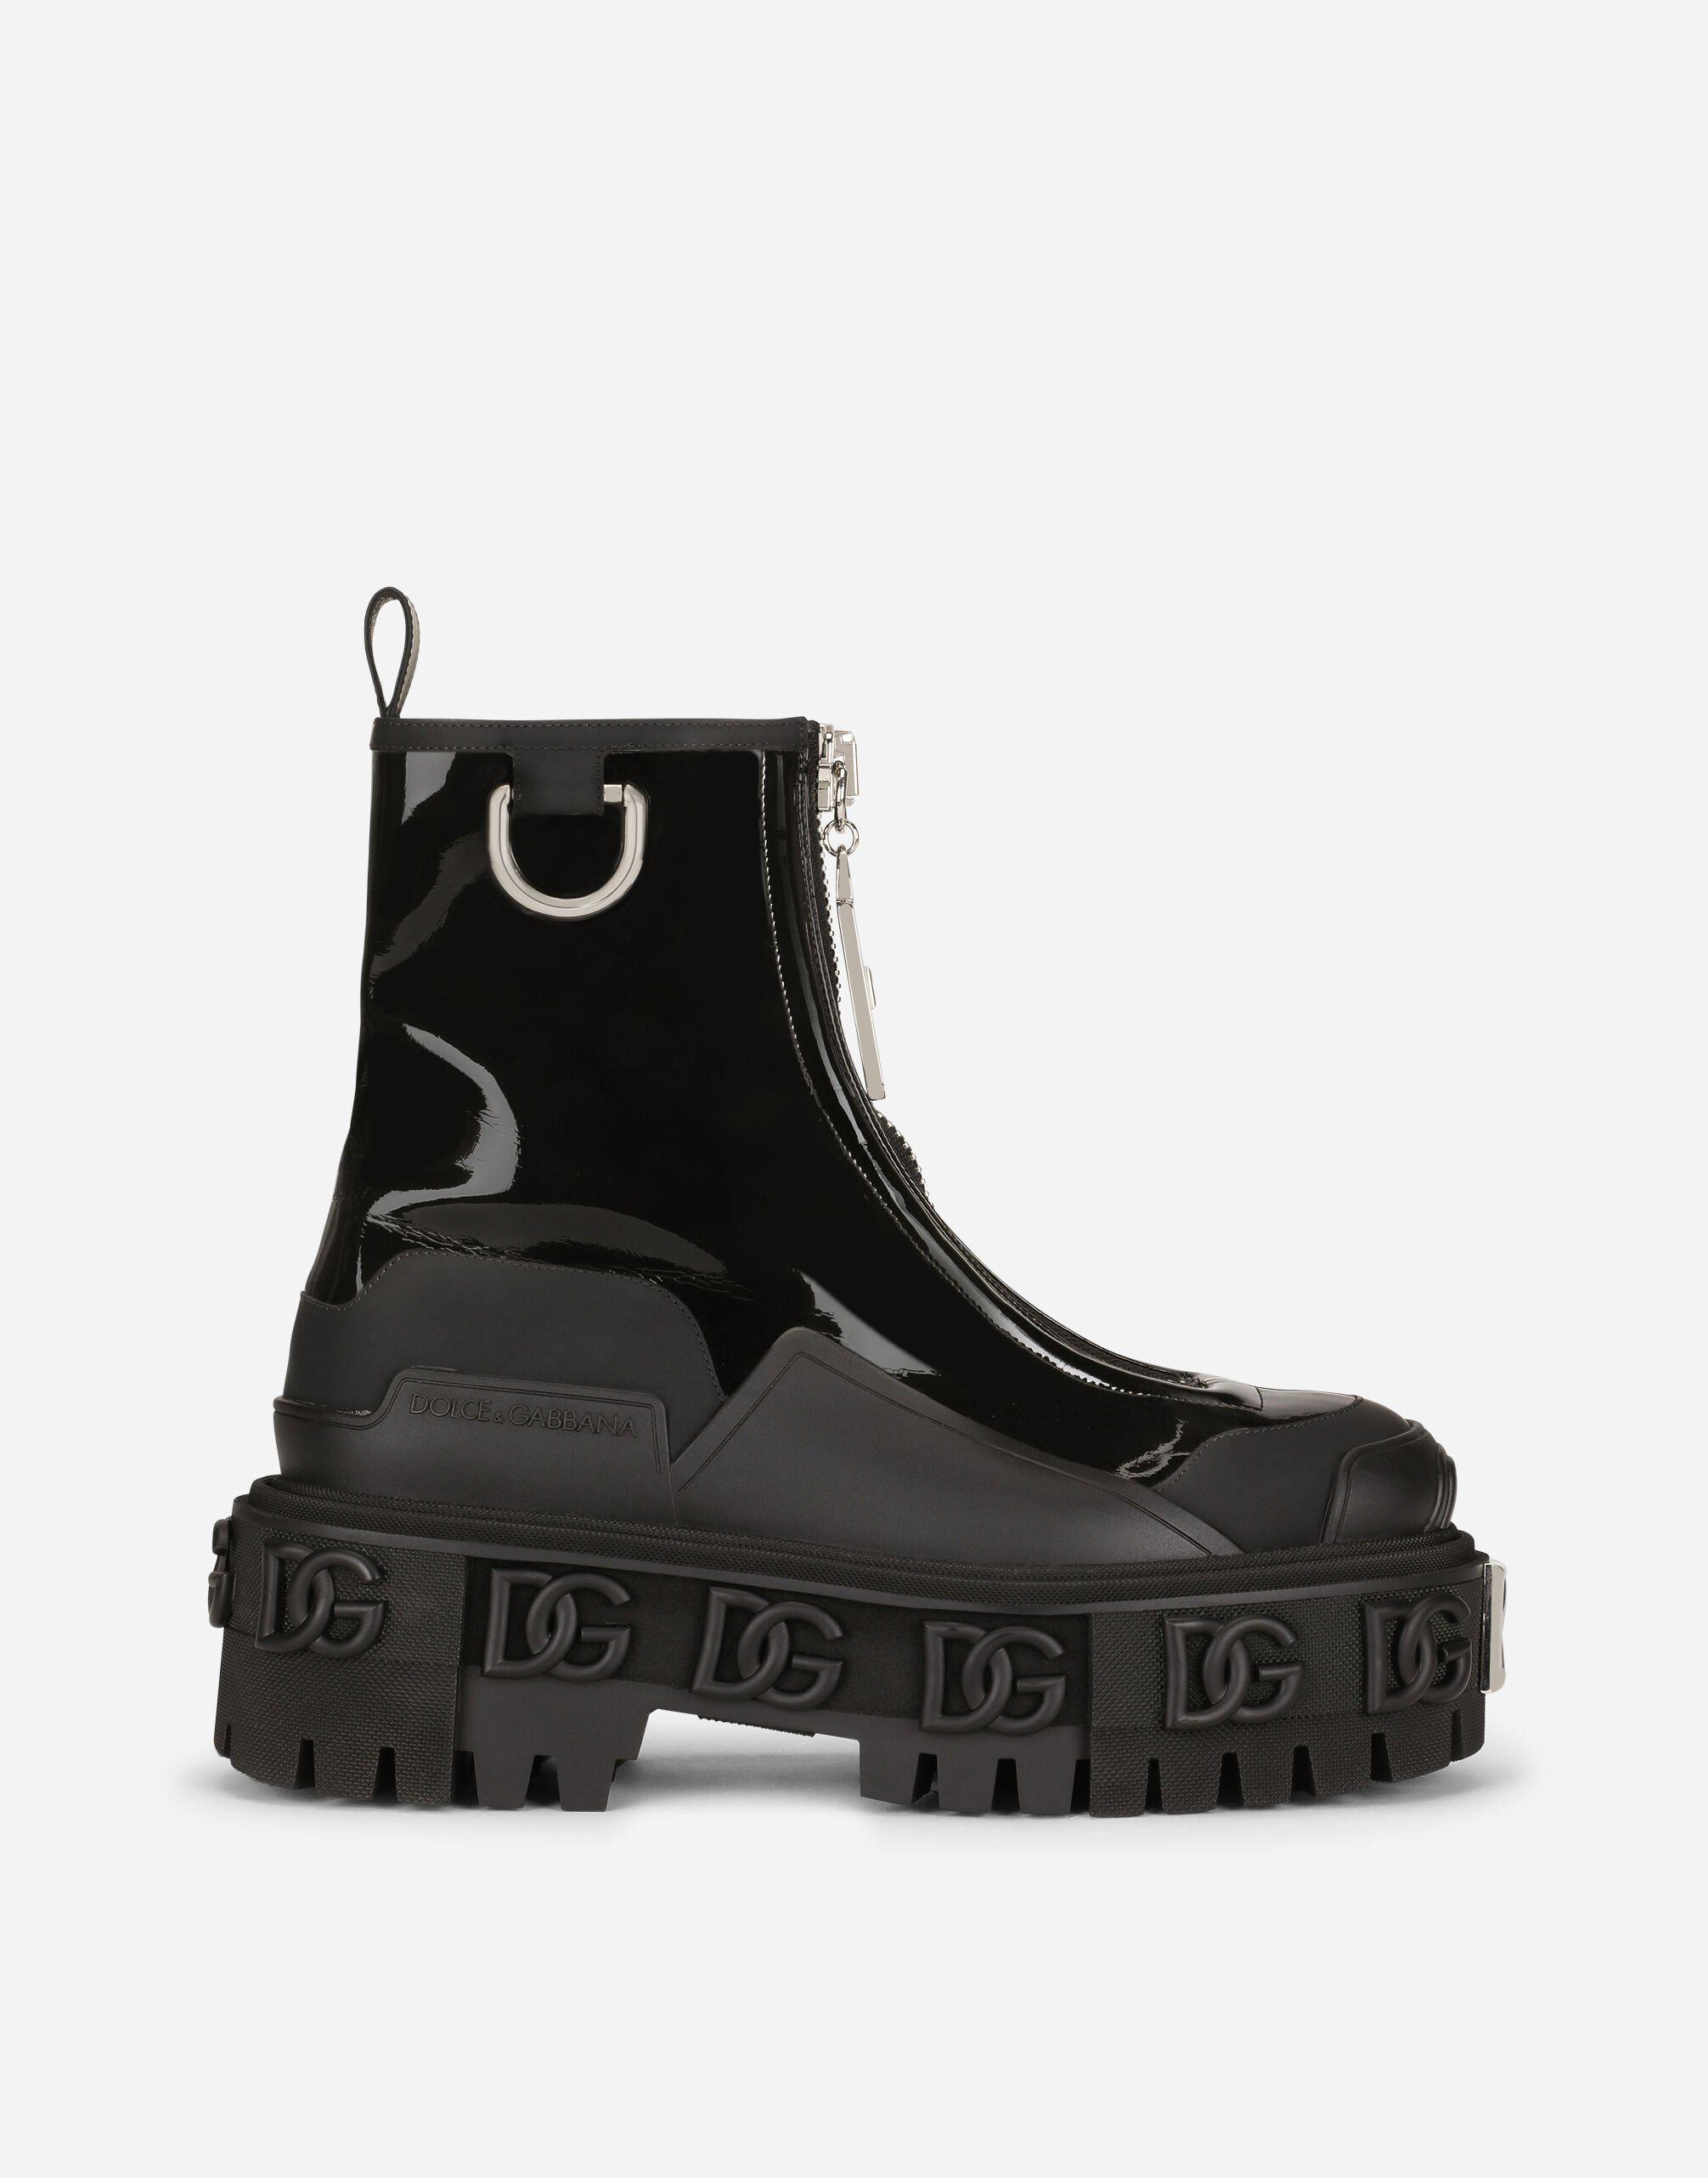 Rubberized calfskin and patent leather ankle boots with DG logo